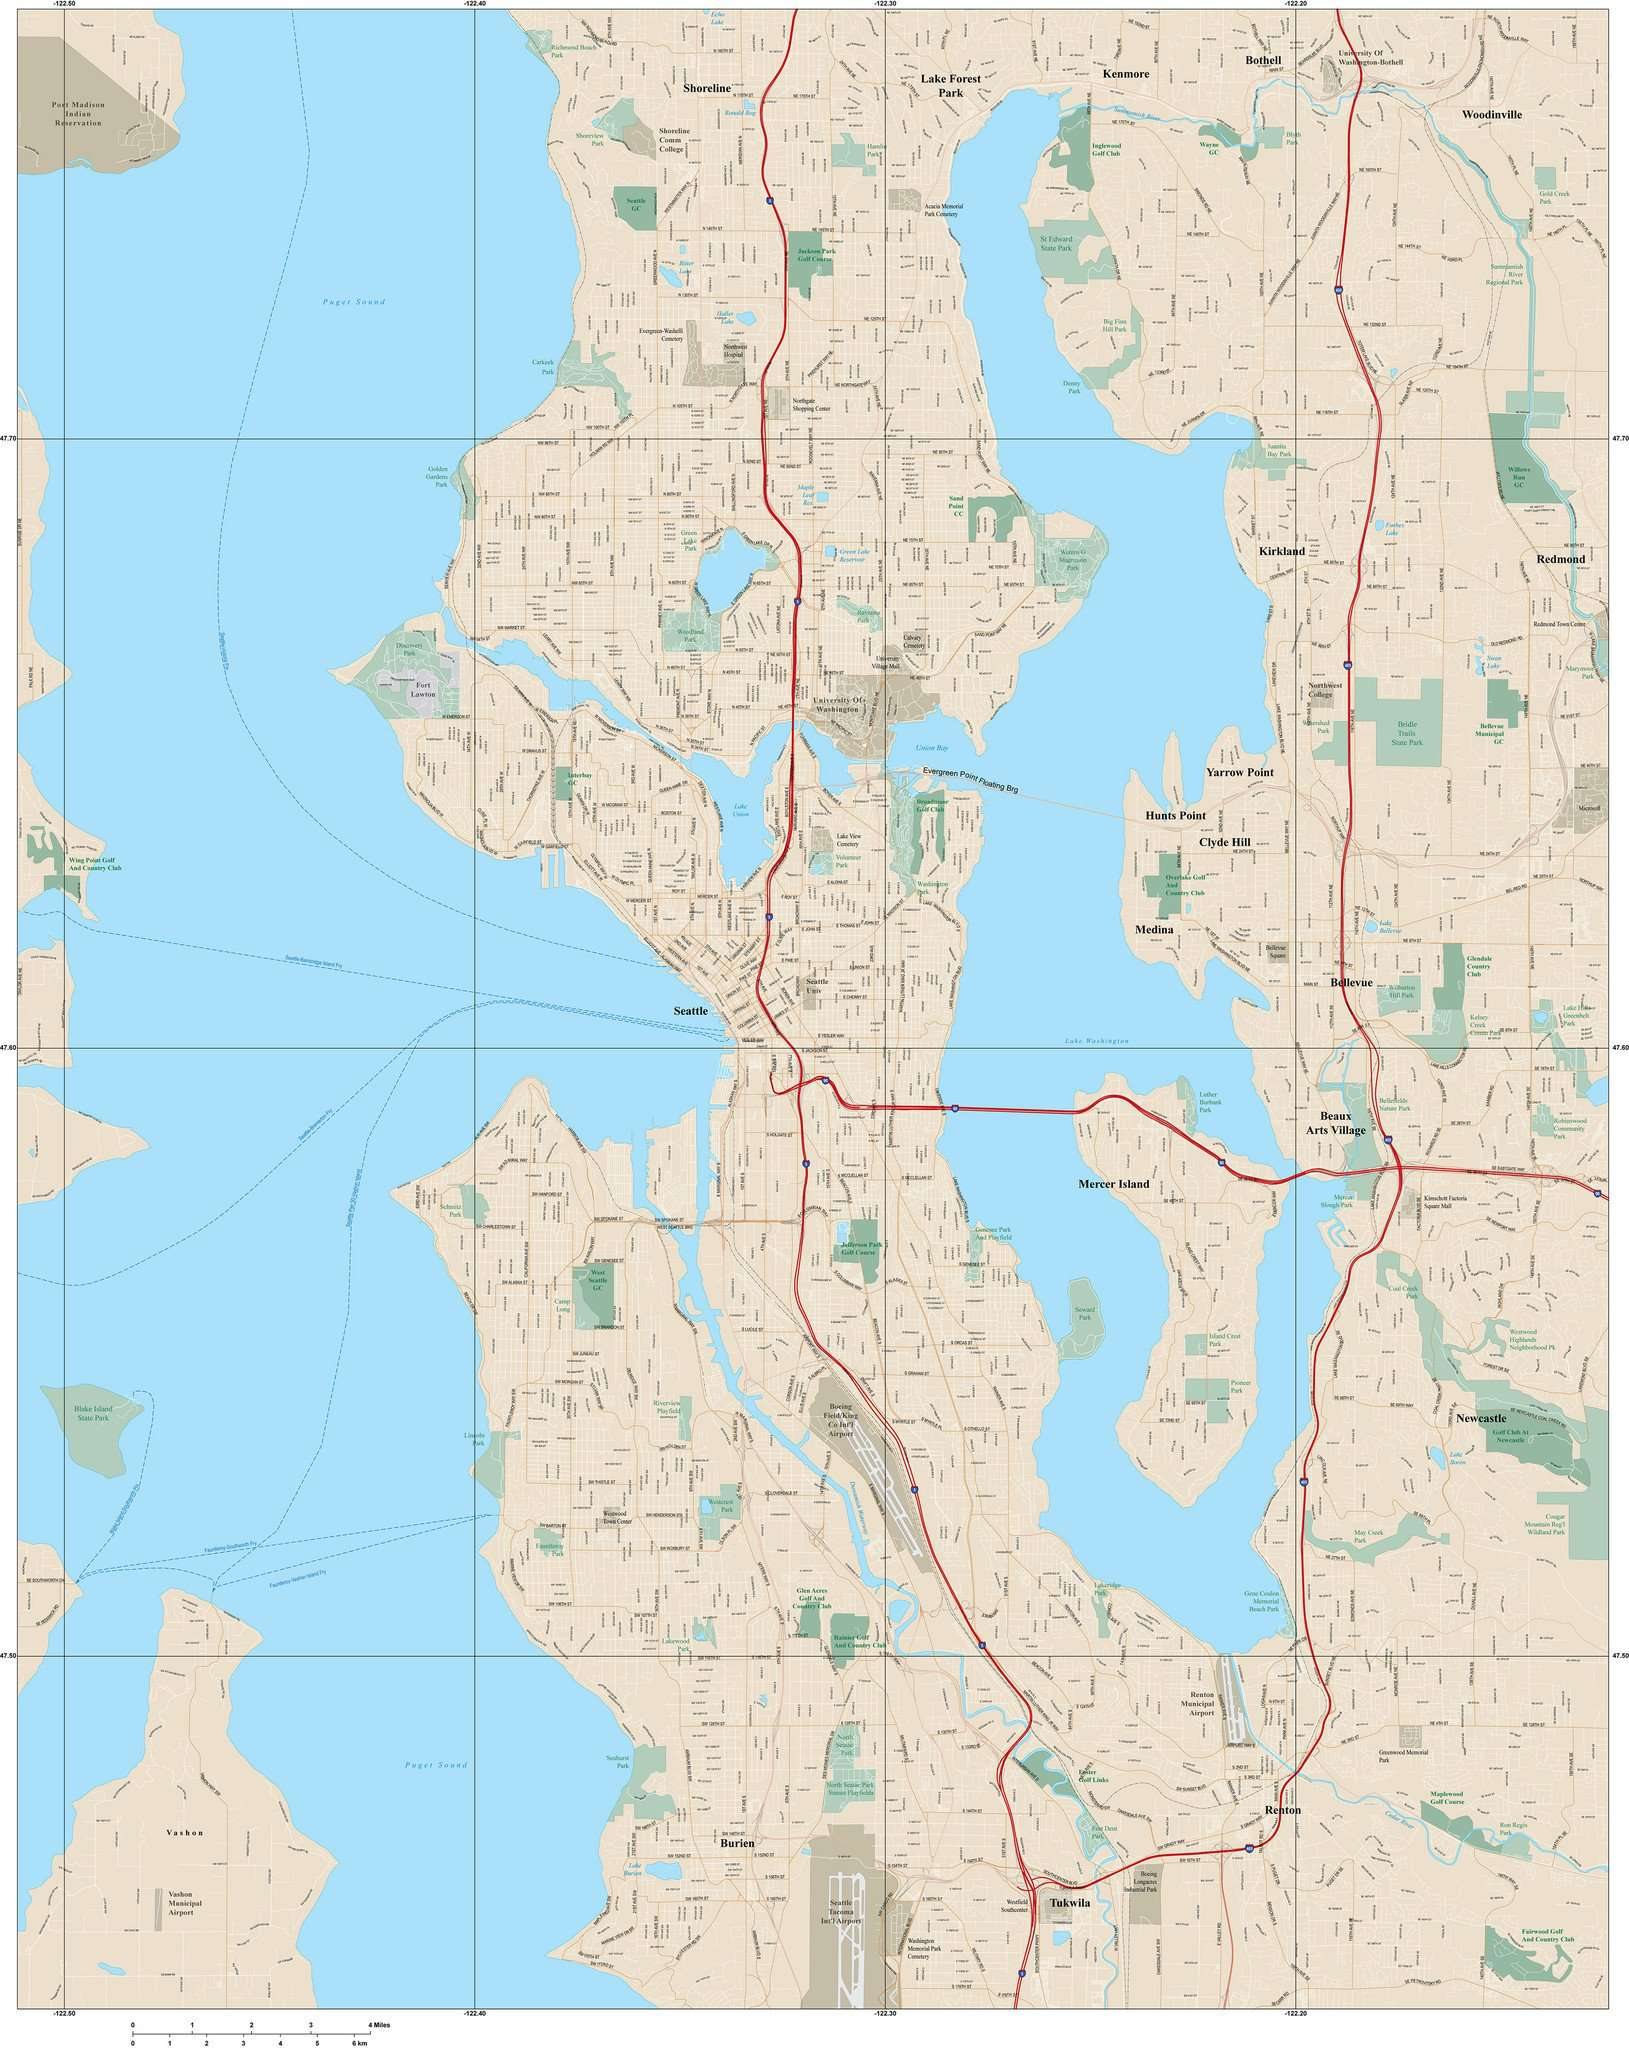 Seattle WA Digital Map with Local Streets Adobe Illustrator